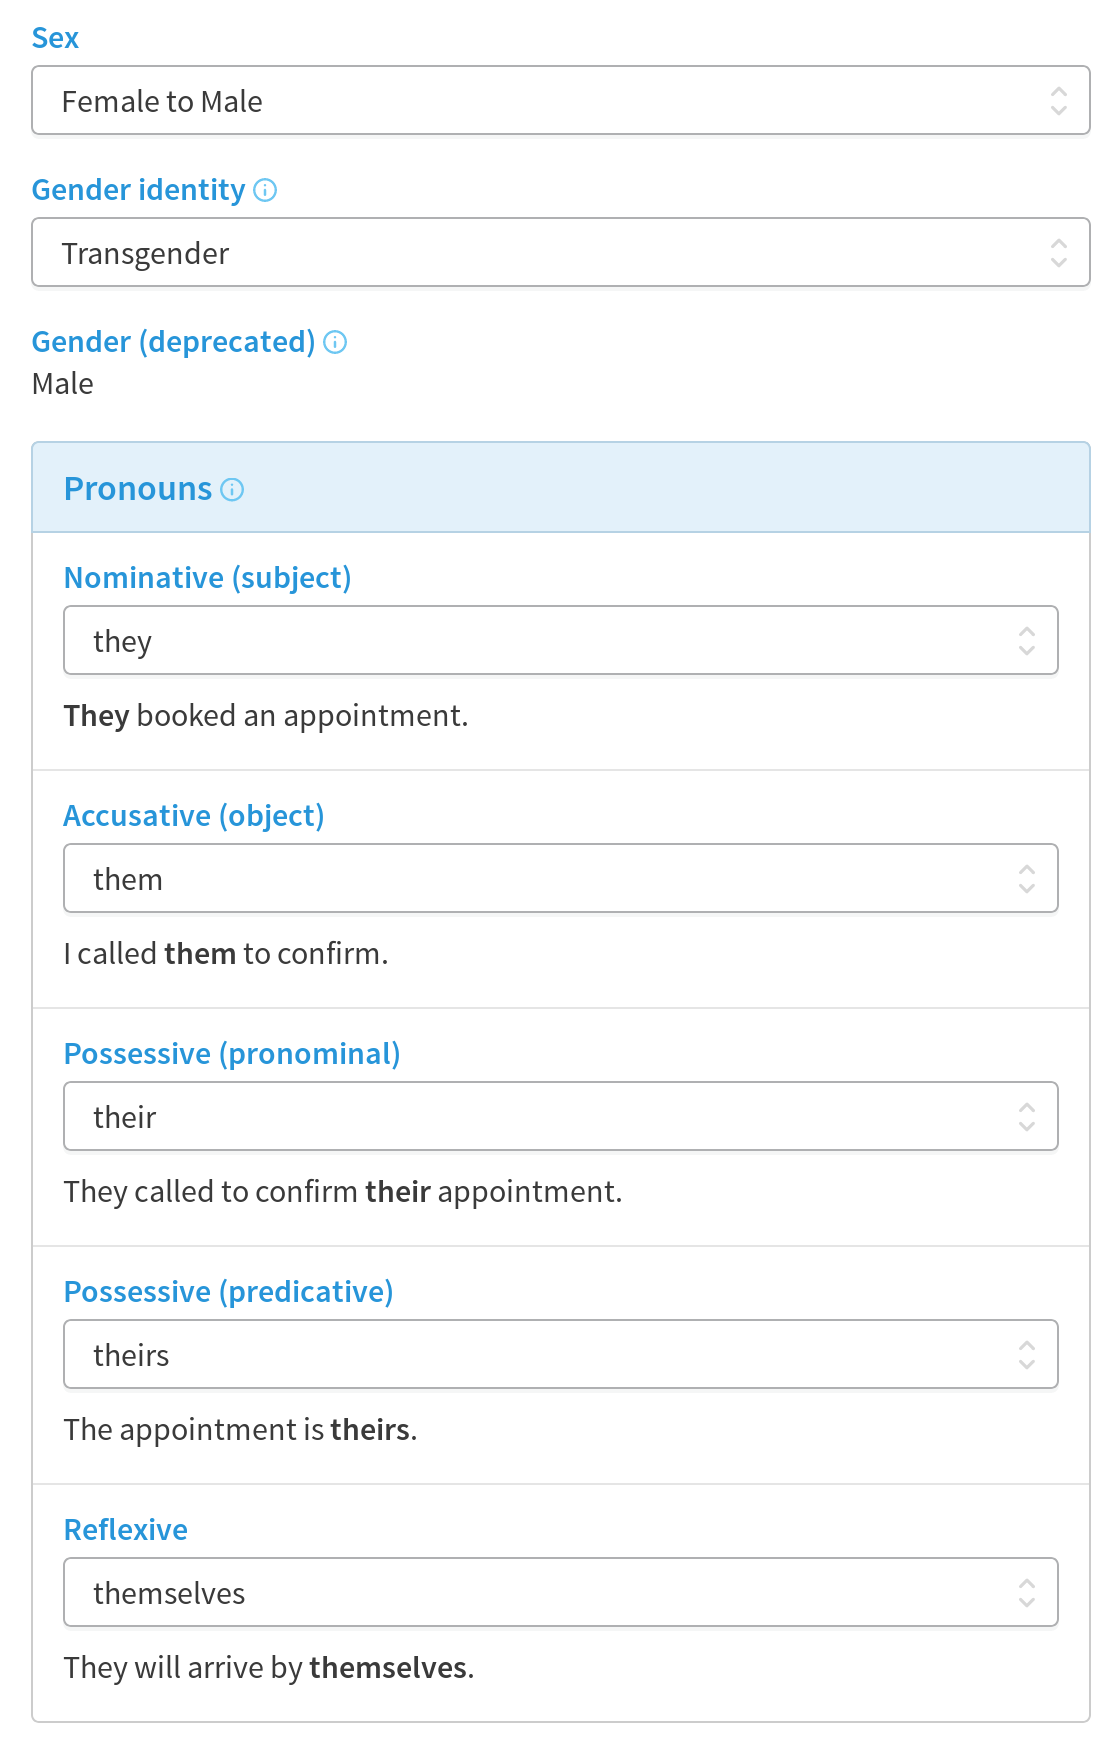 Cliniko settings for sex, gender identity and pronoun options.